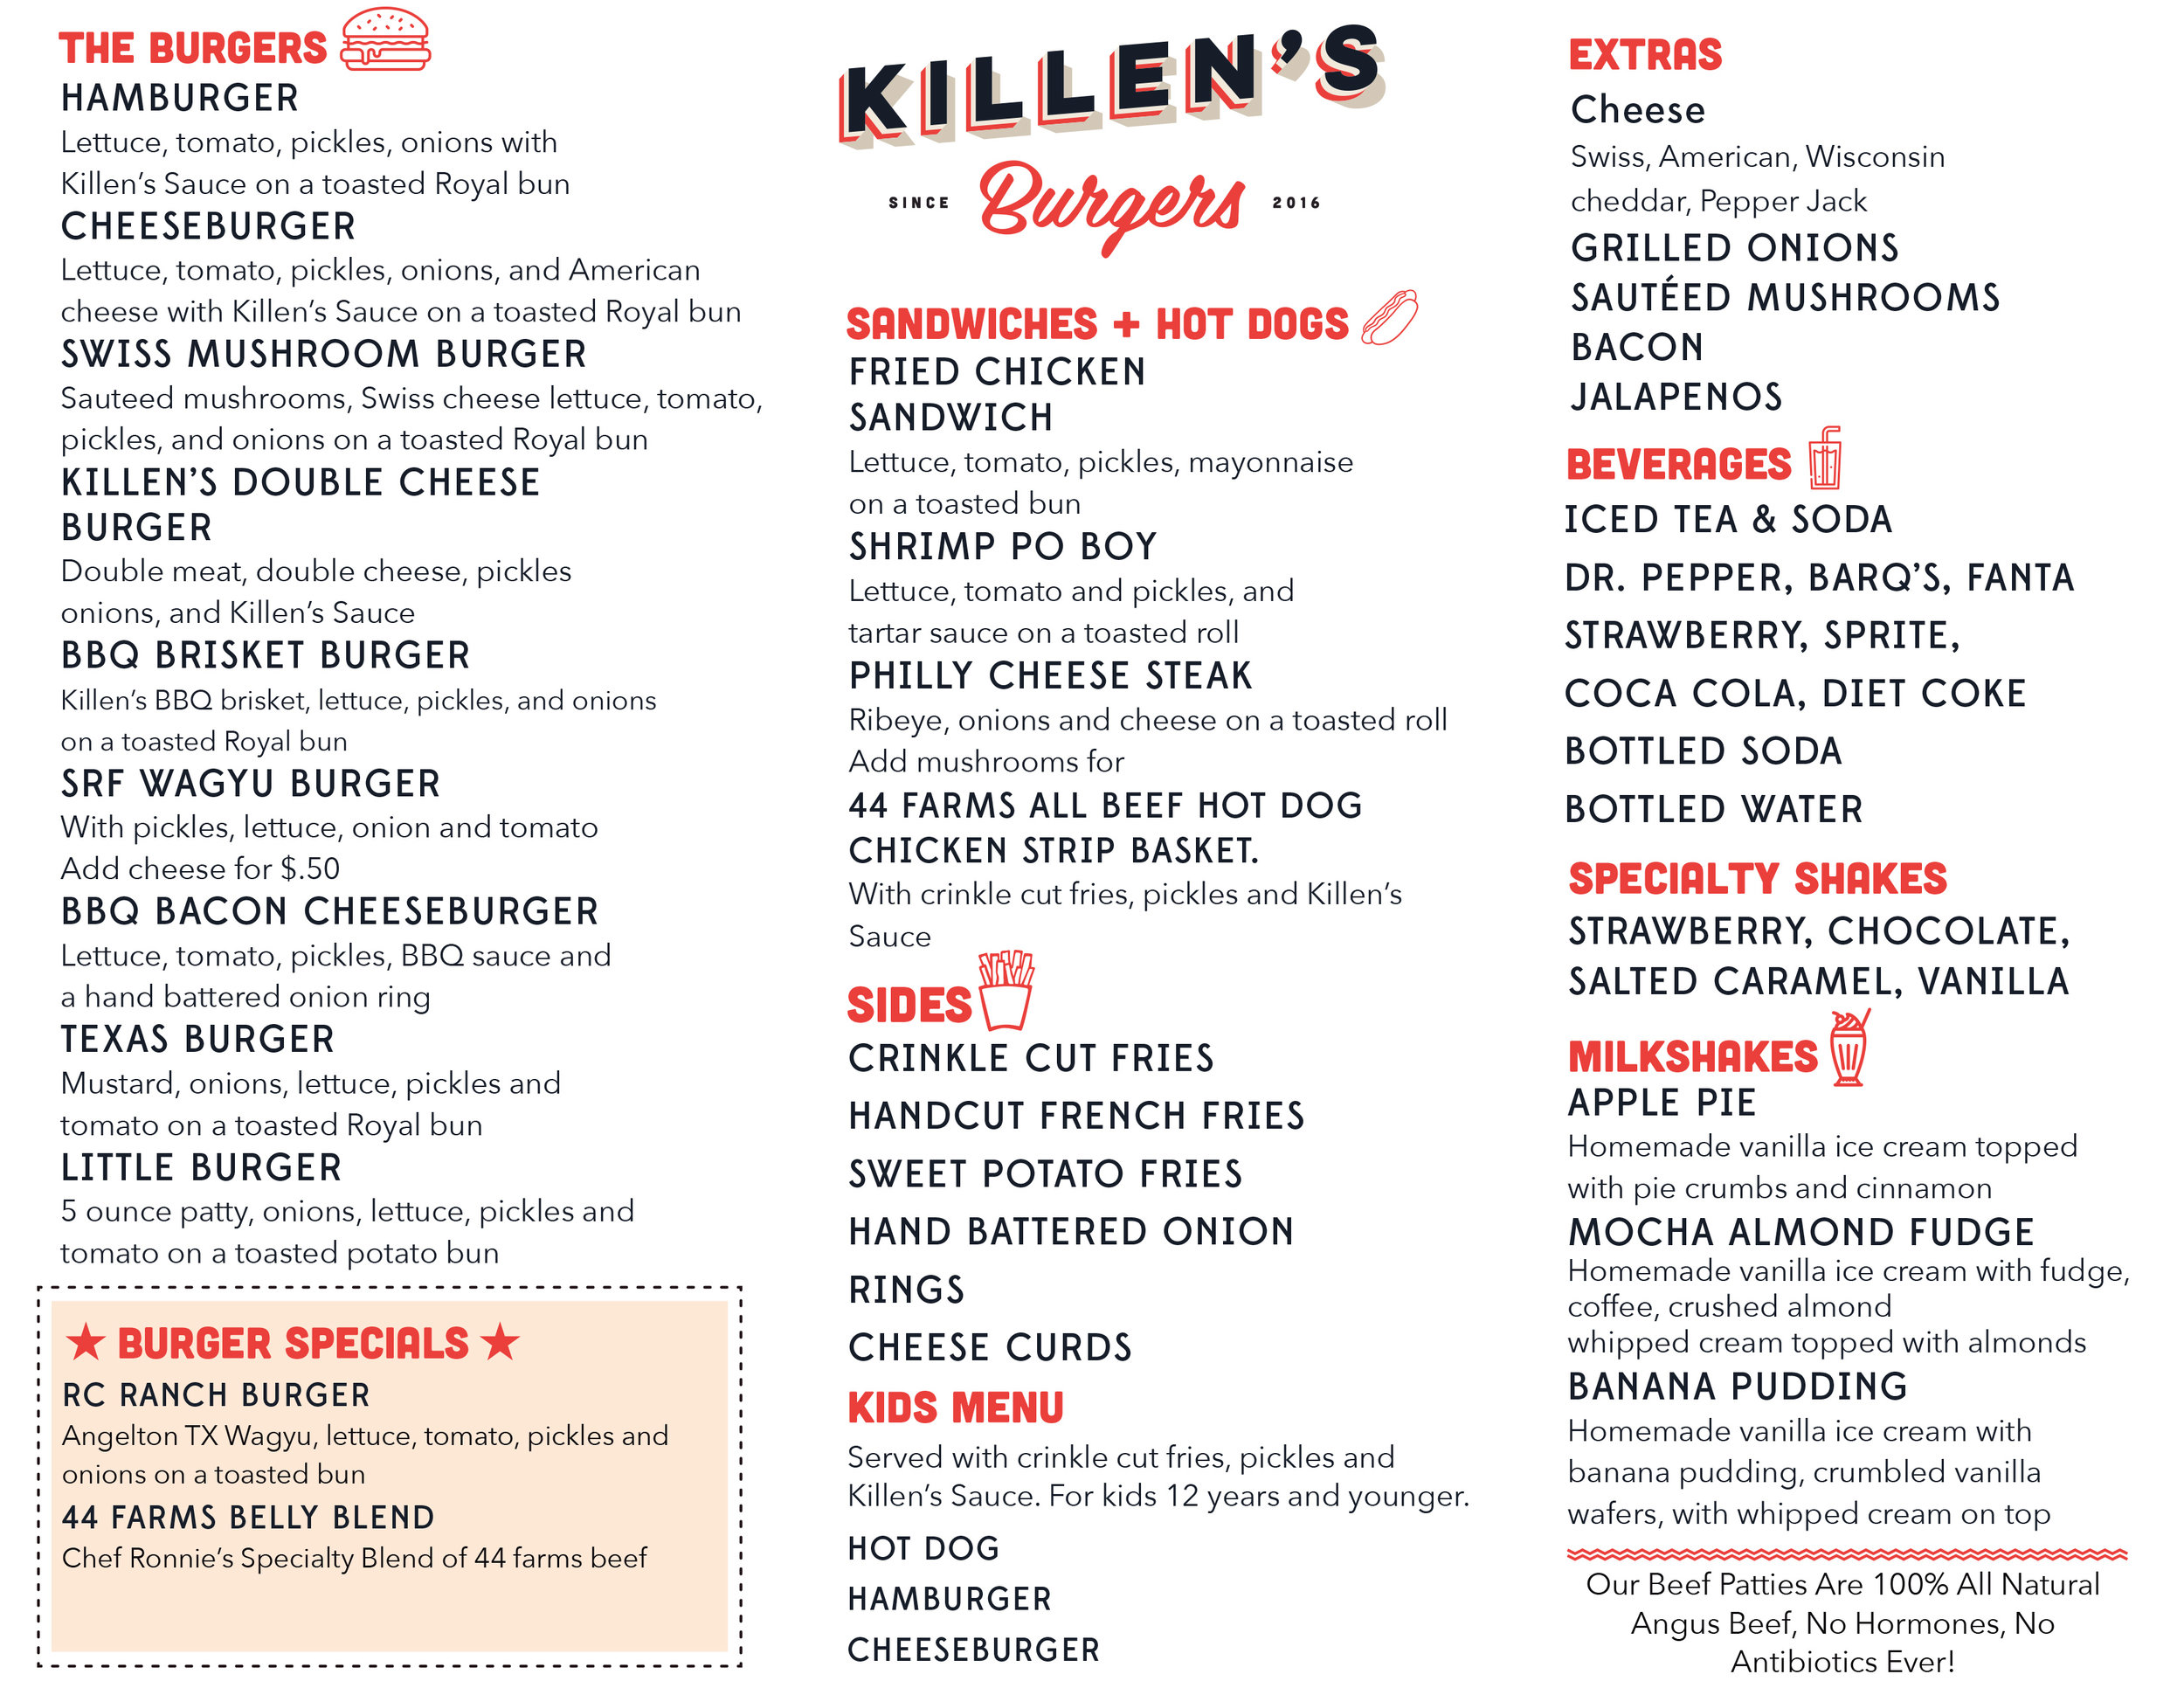 Killen's Burger Menu - No Prices.jpg